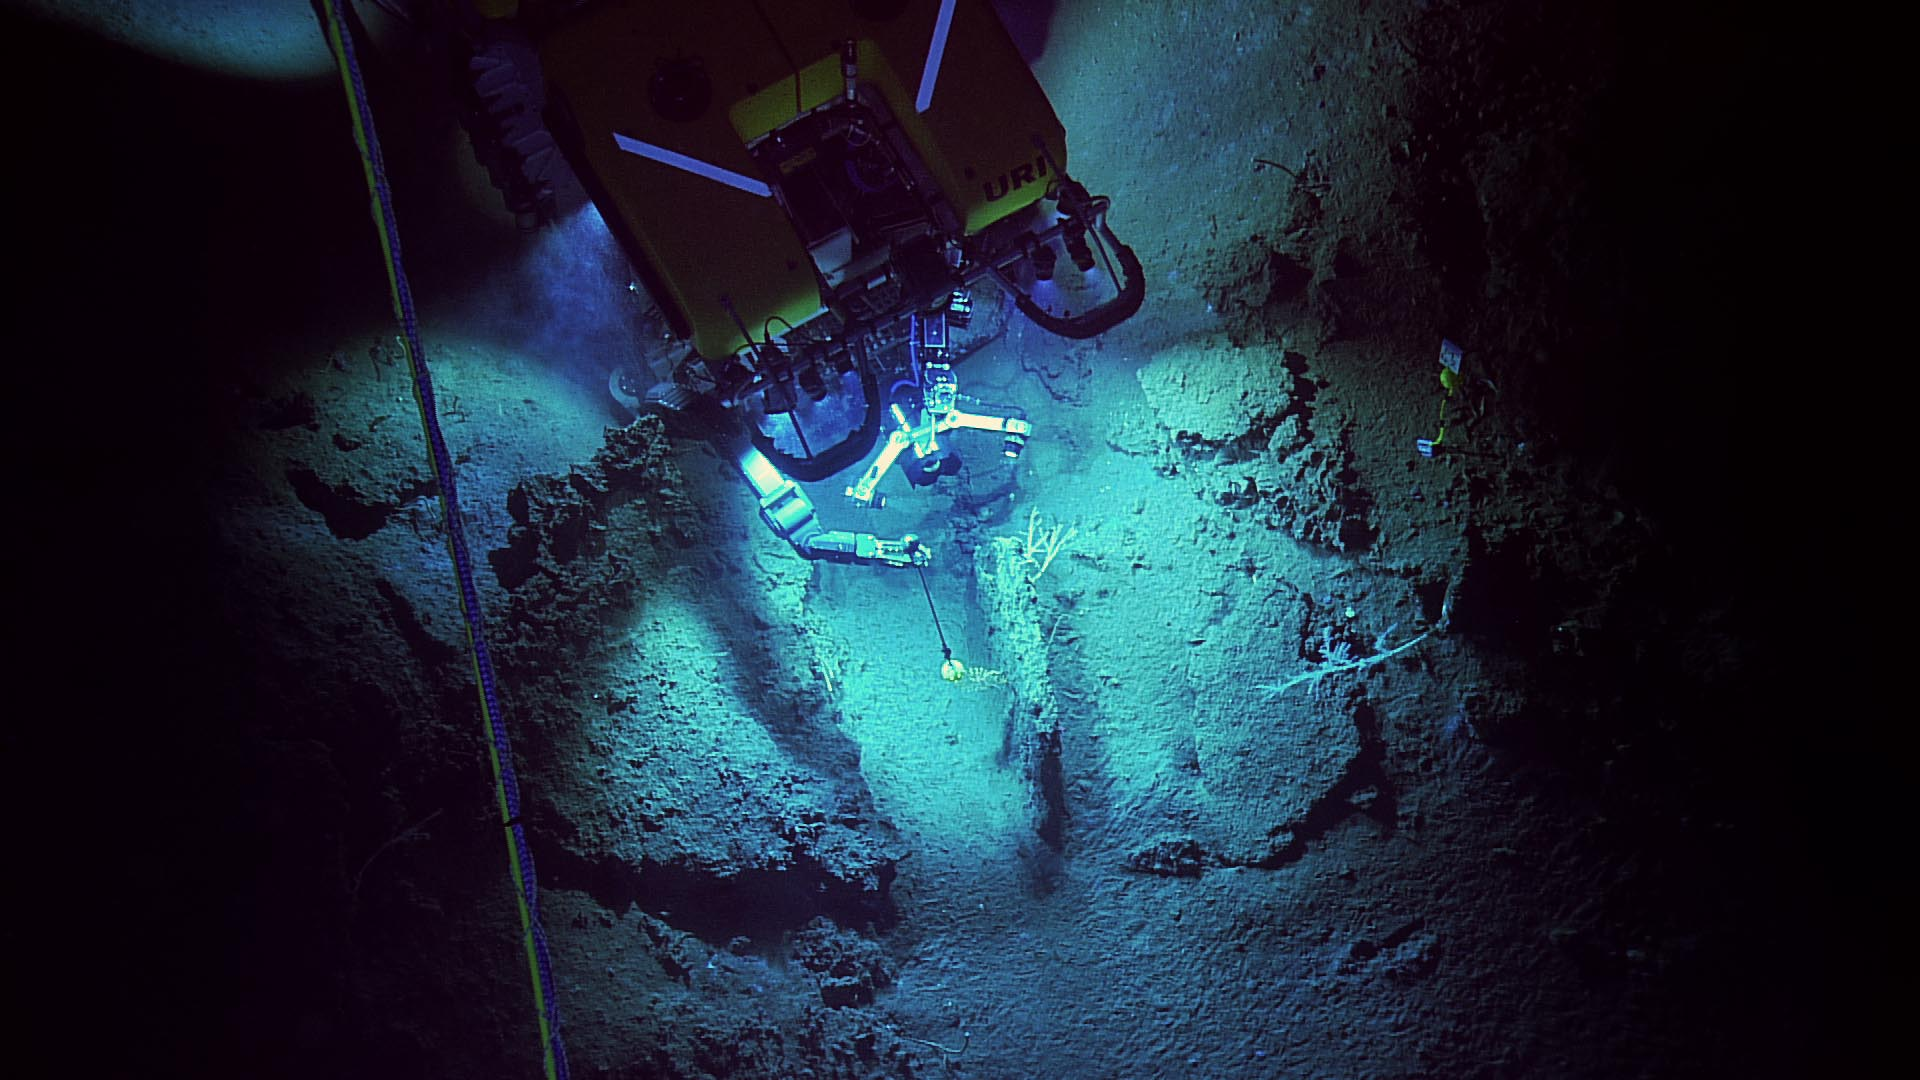 <div style='color:#000000;'><br /><br /><h2>ROV Hercules measuring deep sea corals using the WhAM (wiffle assisted measurement) device.</h2>Photo courtesy of Ocean Exploration Trust and ECOGIG</div>